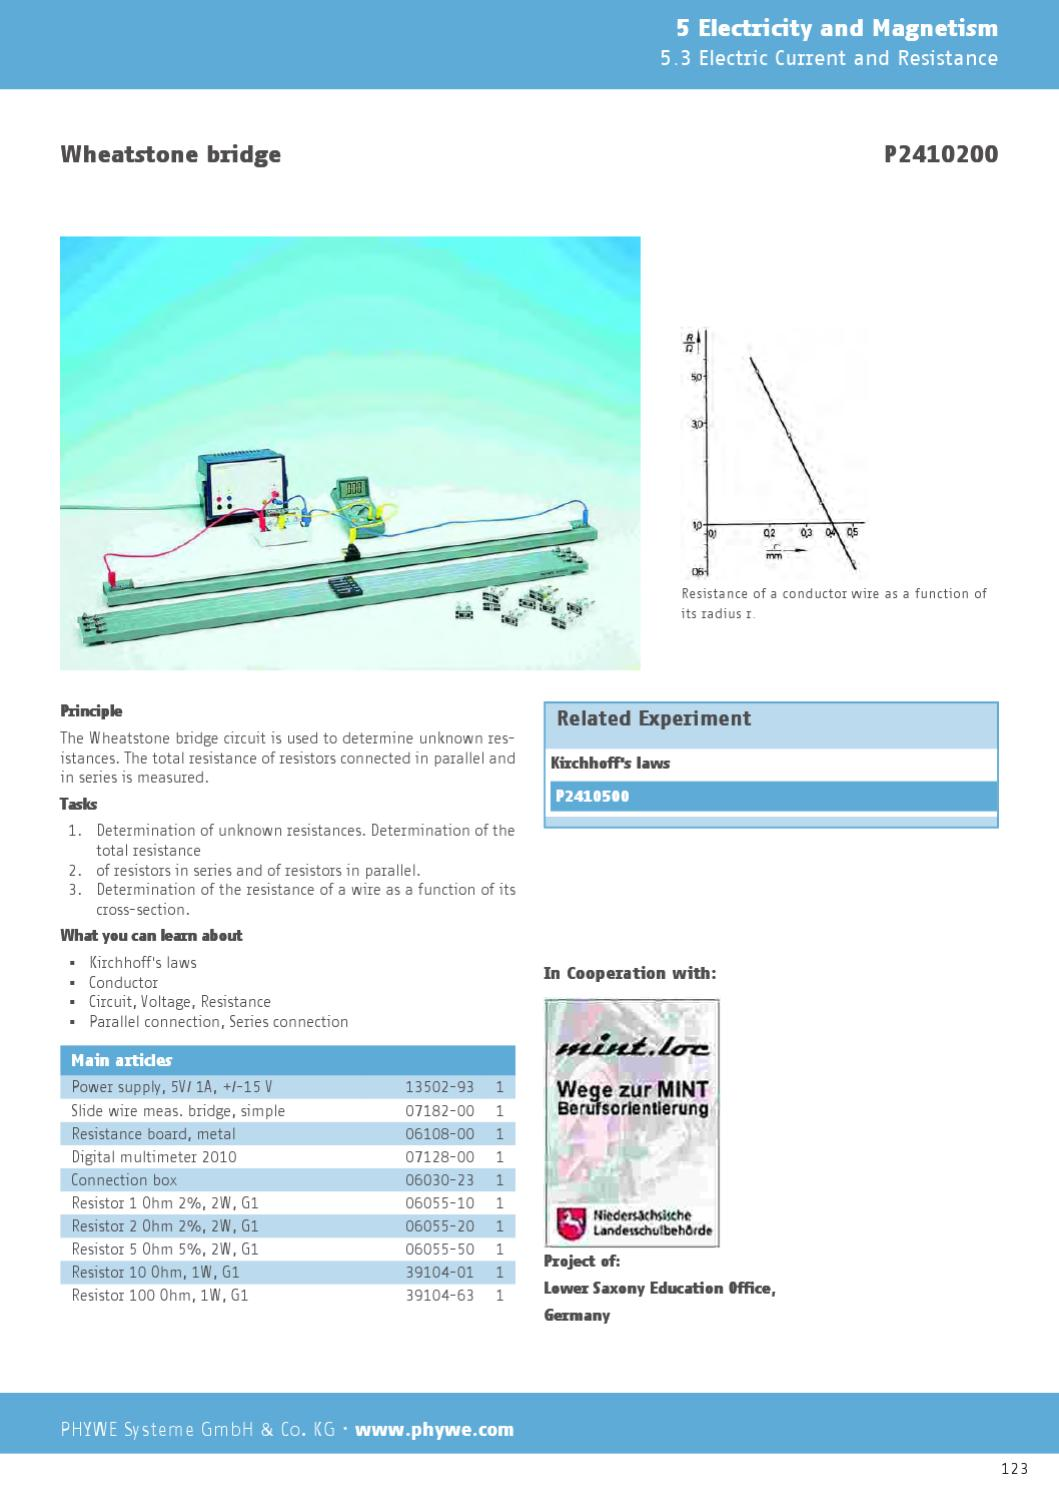 EN Physics: Laboratory Experiments by PHYWE Systeme GmbH & Co KG - issuu